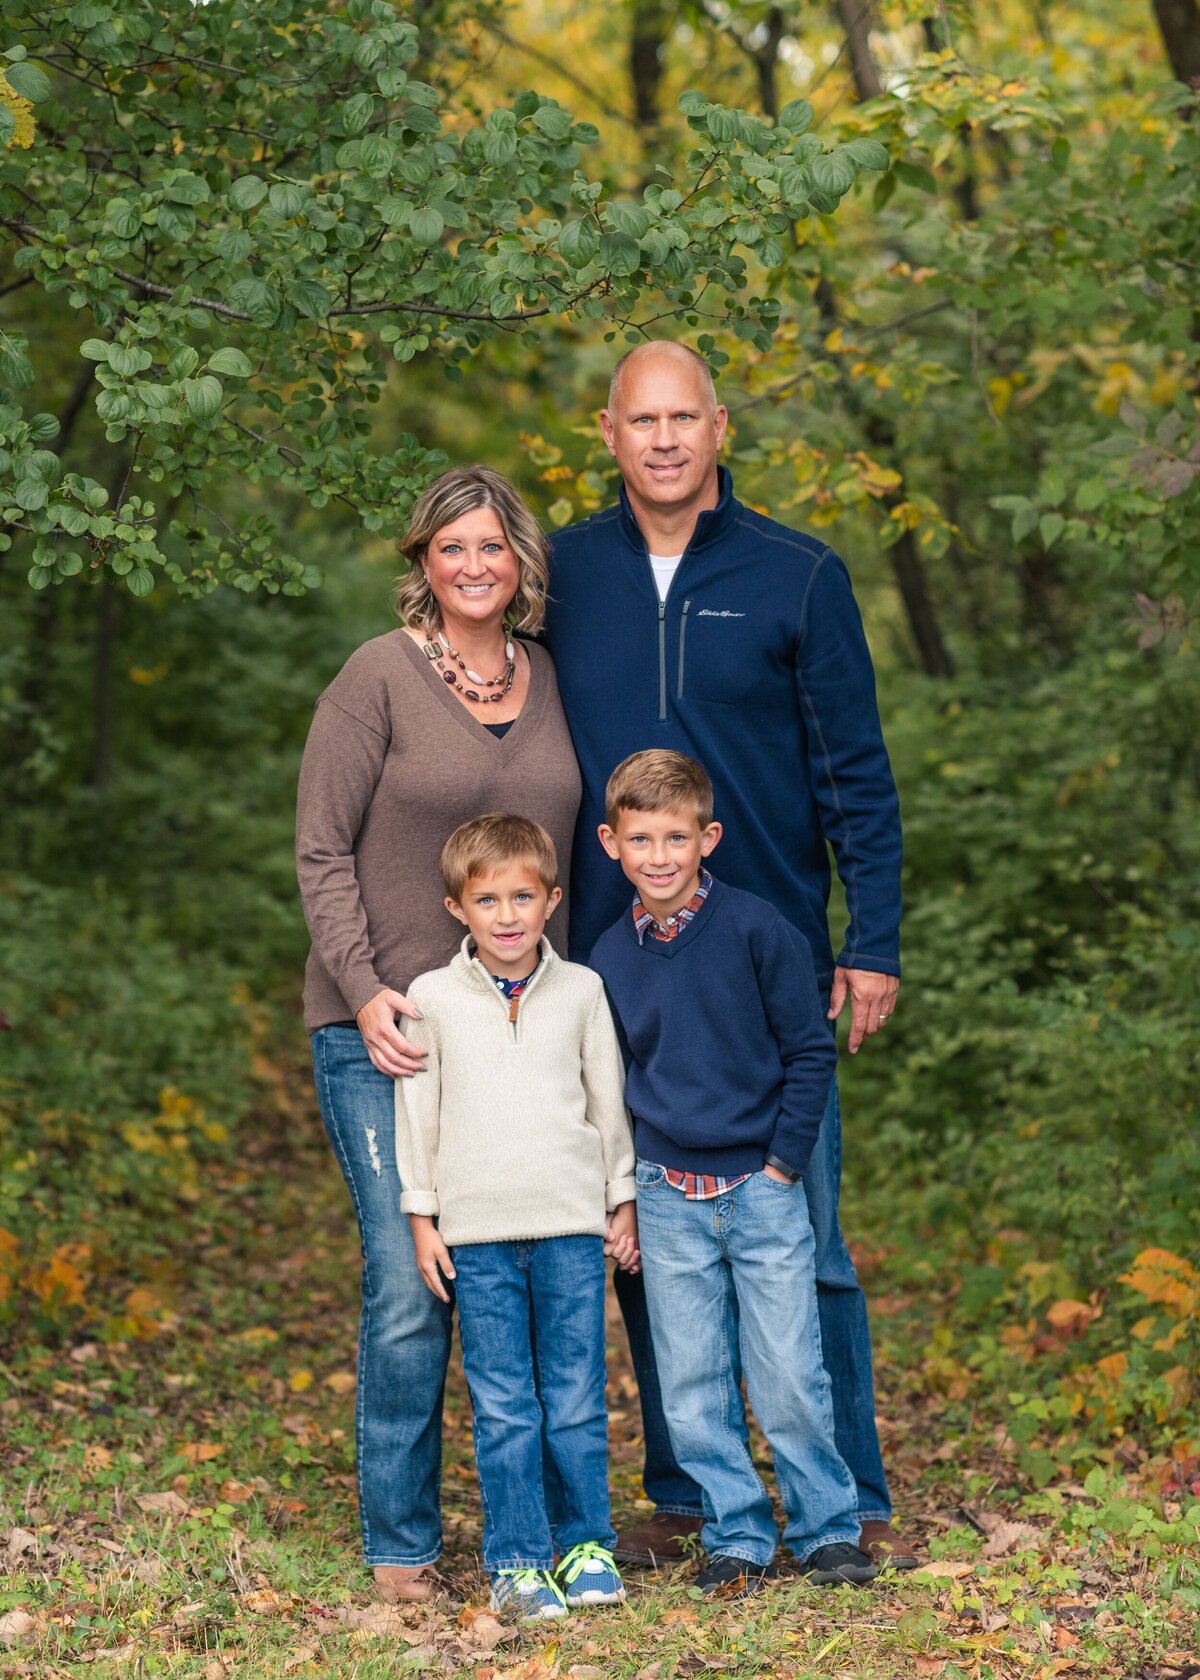 Des-Moines-Iowa-Family-Photographer-Theresa-Schumacher-Photography-Fall-Park-Standing